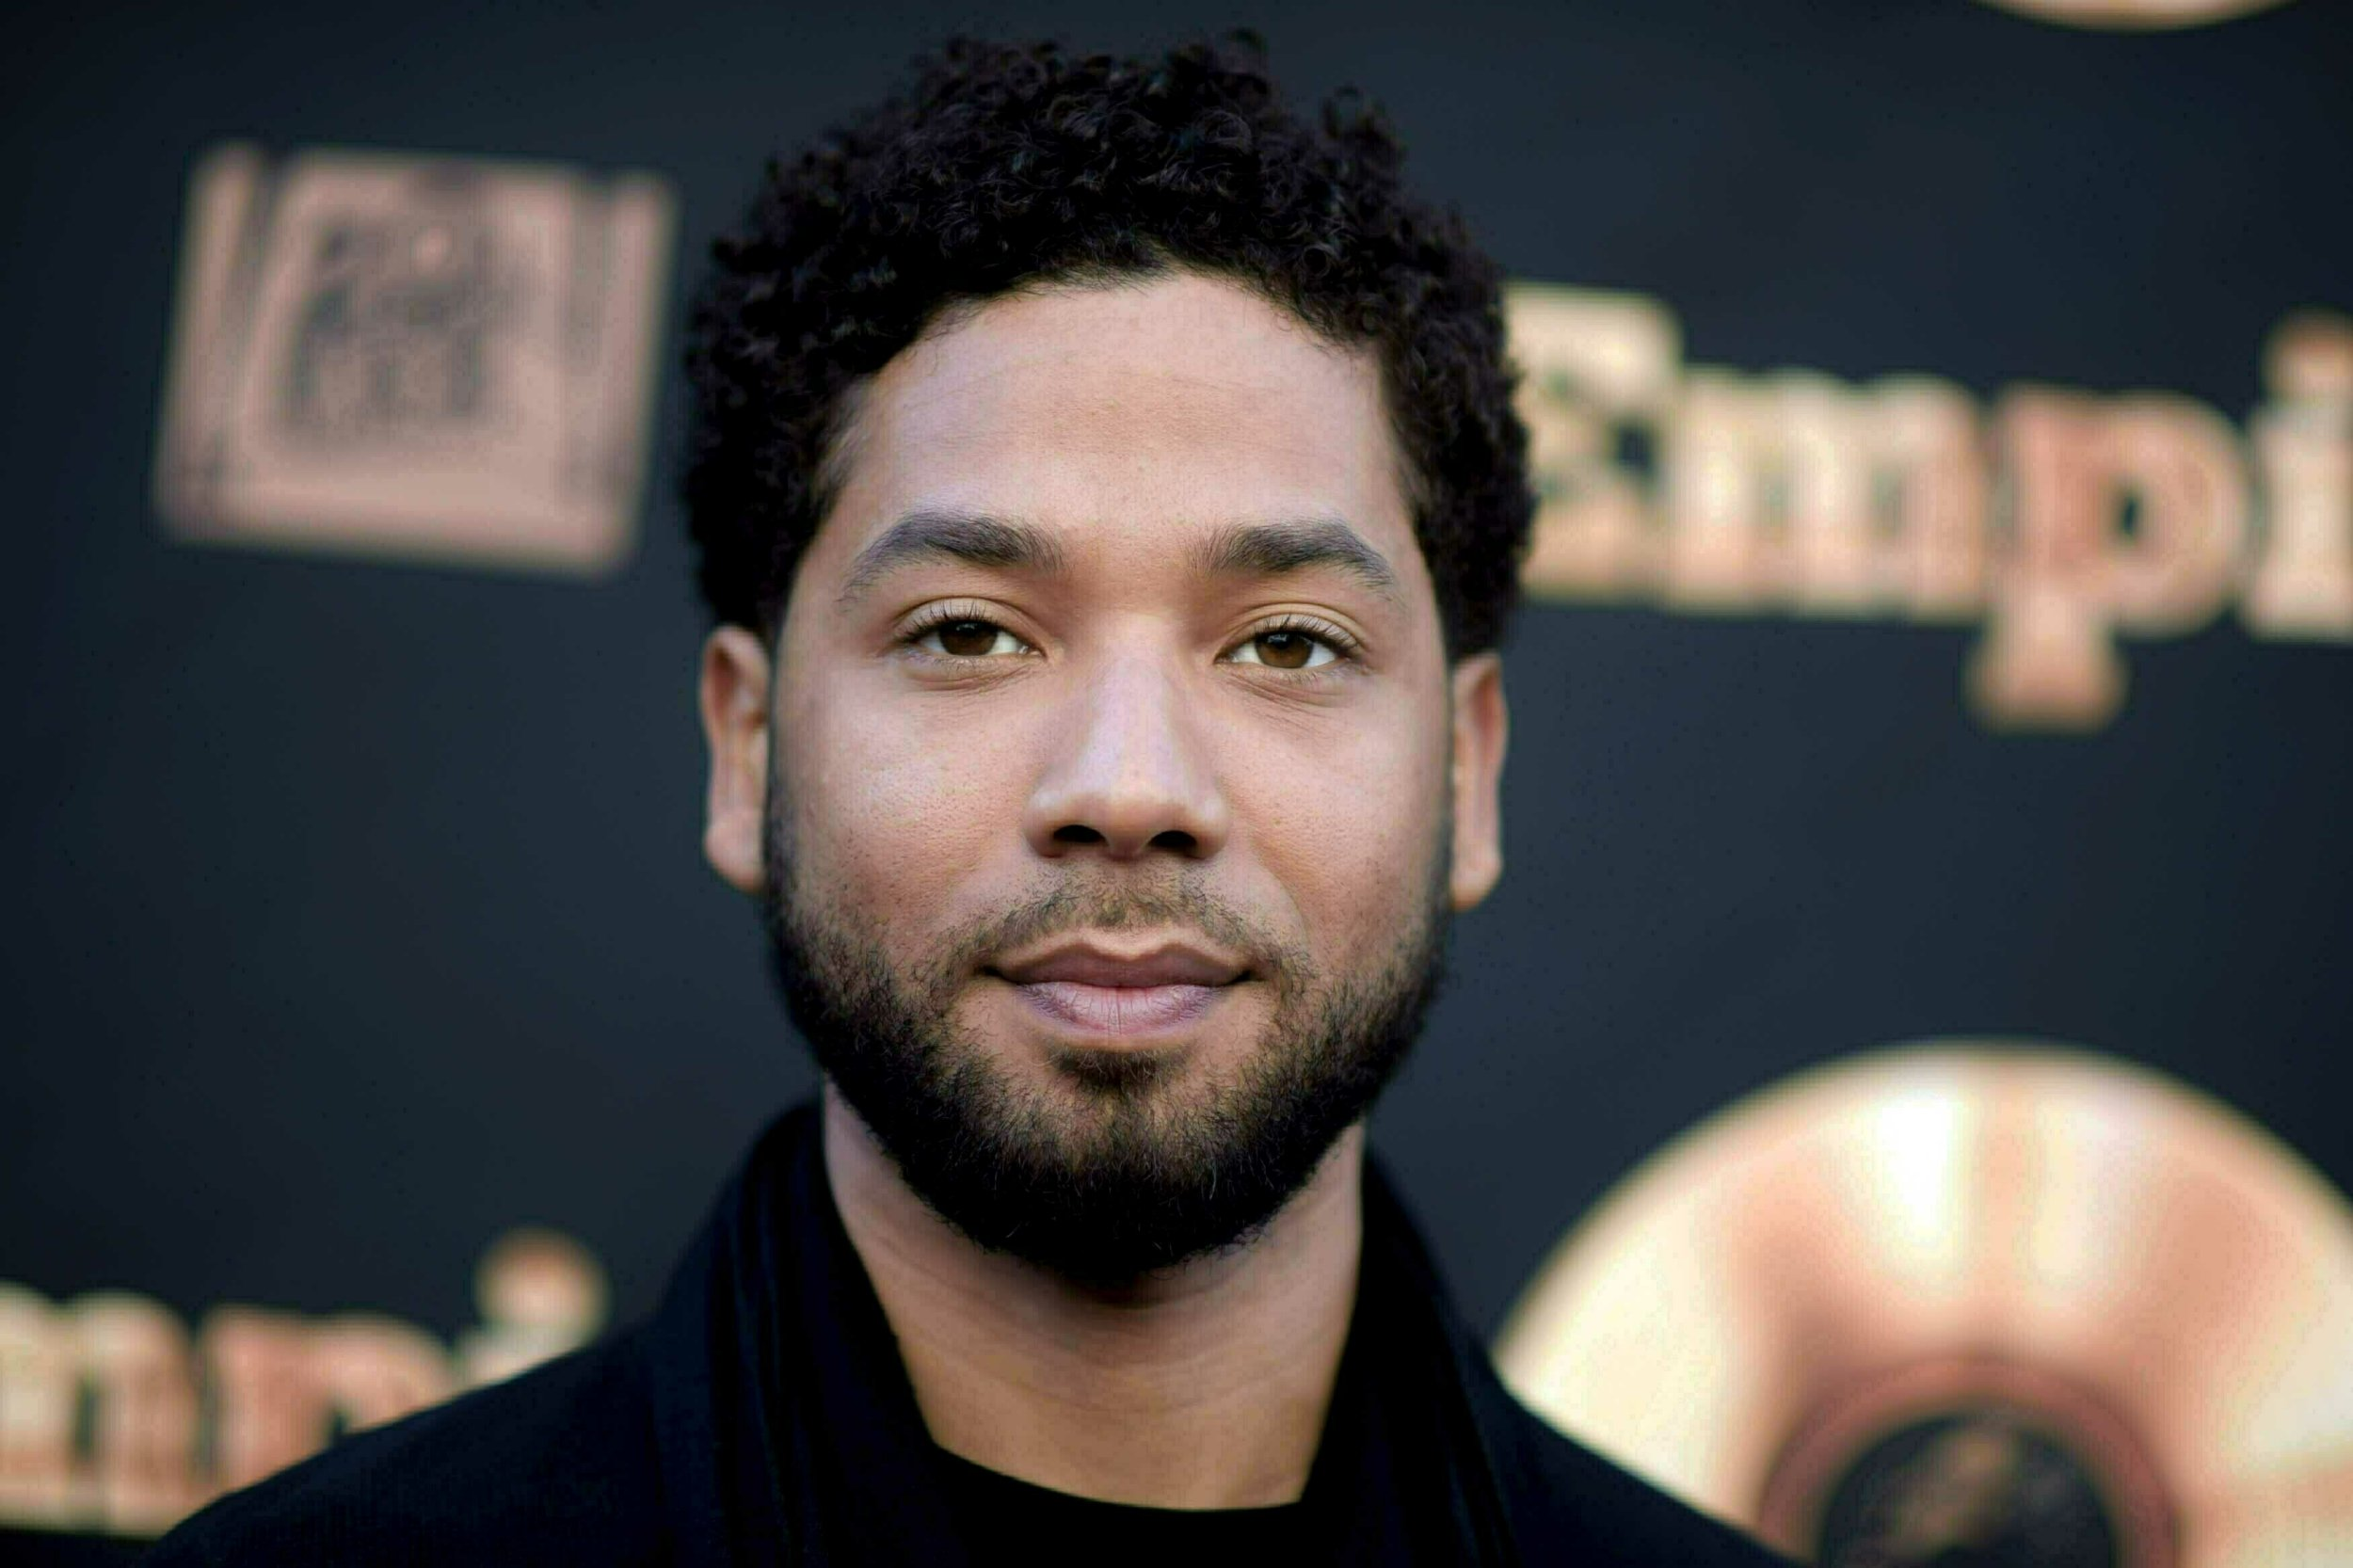 Jussie Smollett facing 16 charges for filing false police report